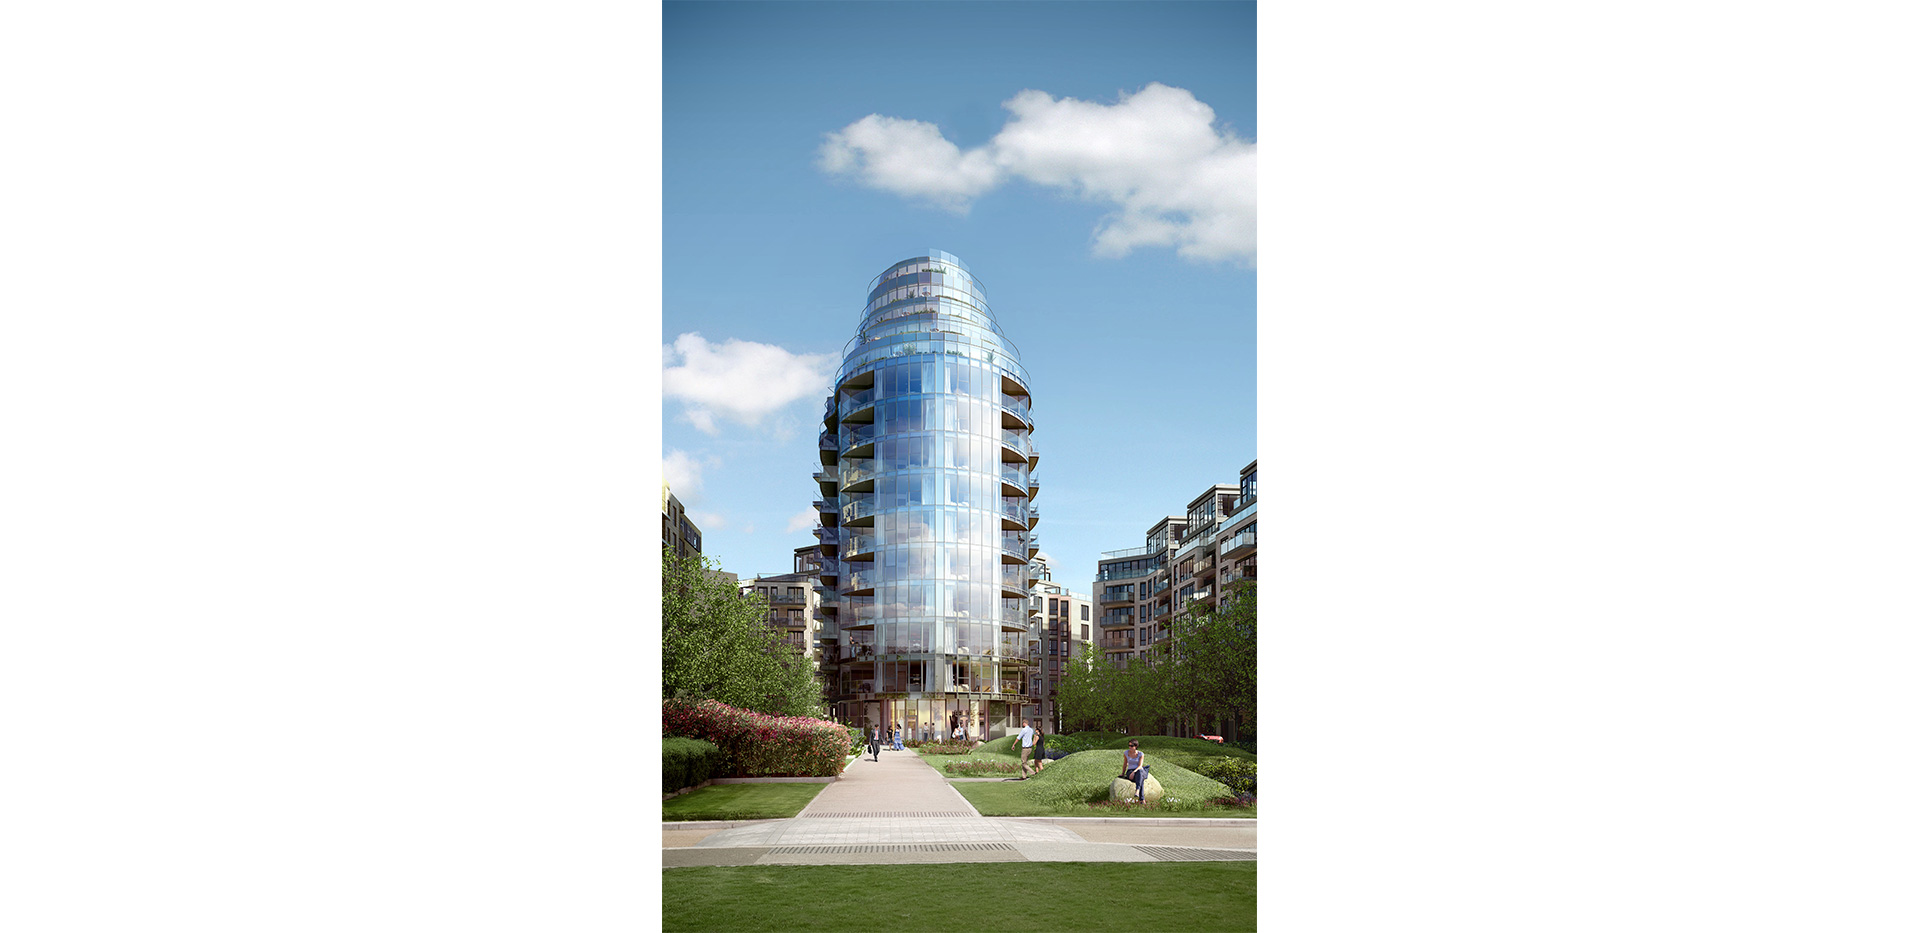 Berkeley, Battersea Reach, Development Exterior 03